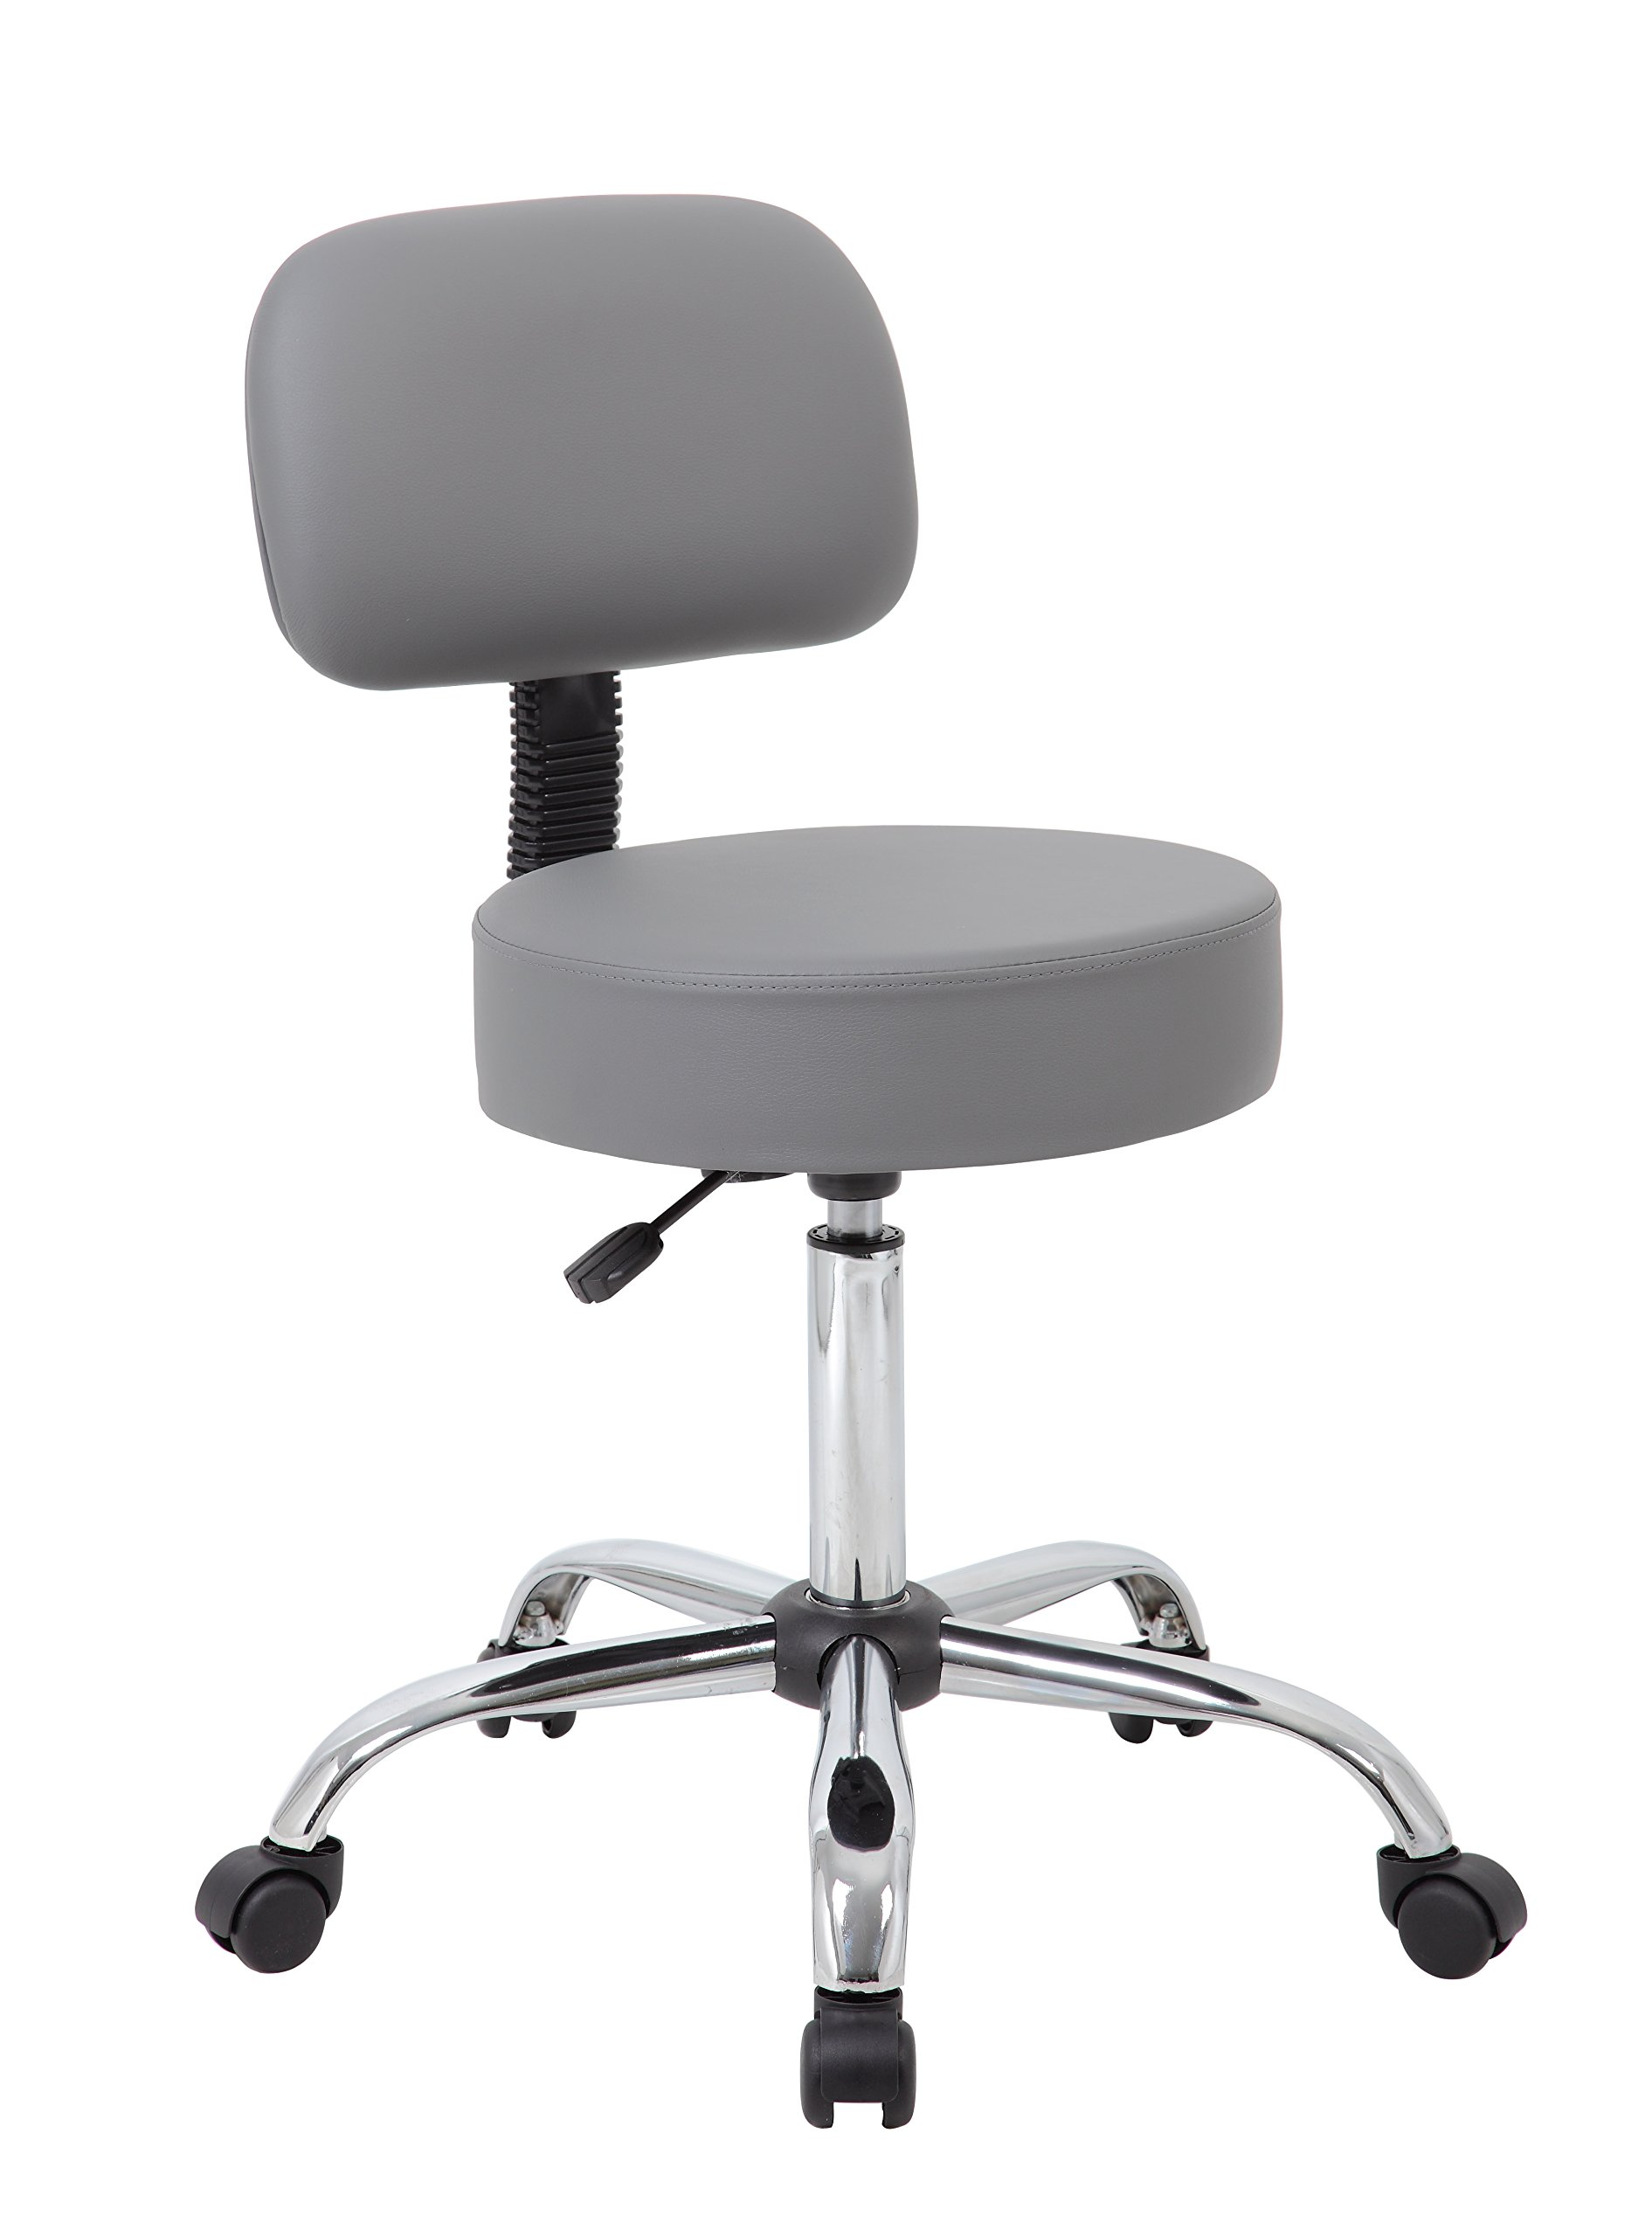 Boss Office Products Be Well Medical Spa Professional Adjustable Drafting Stool with Back, Grey by Boss Office Products